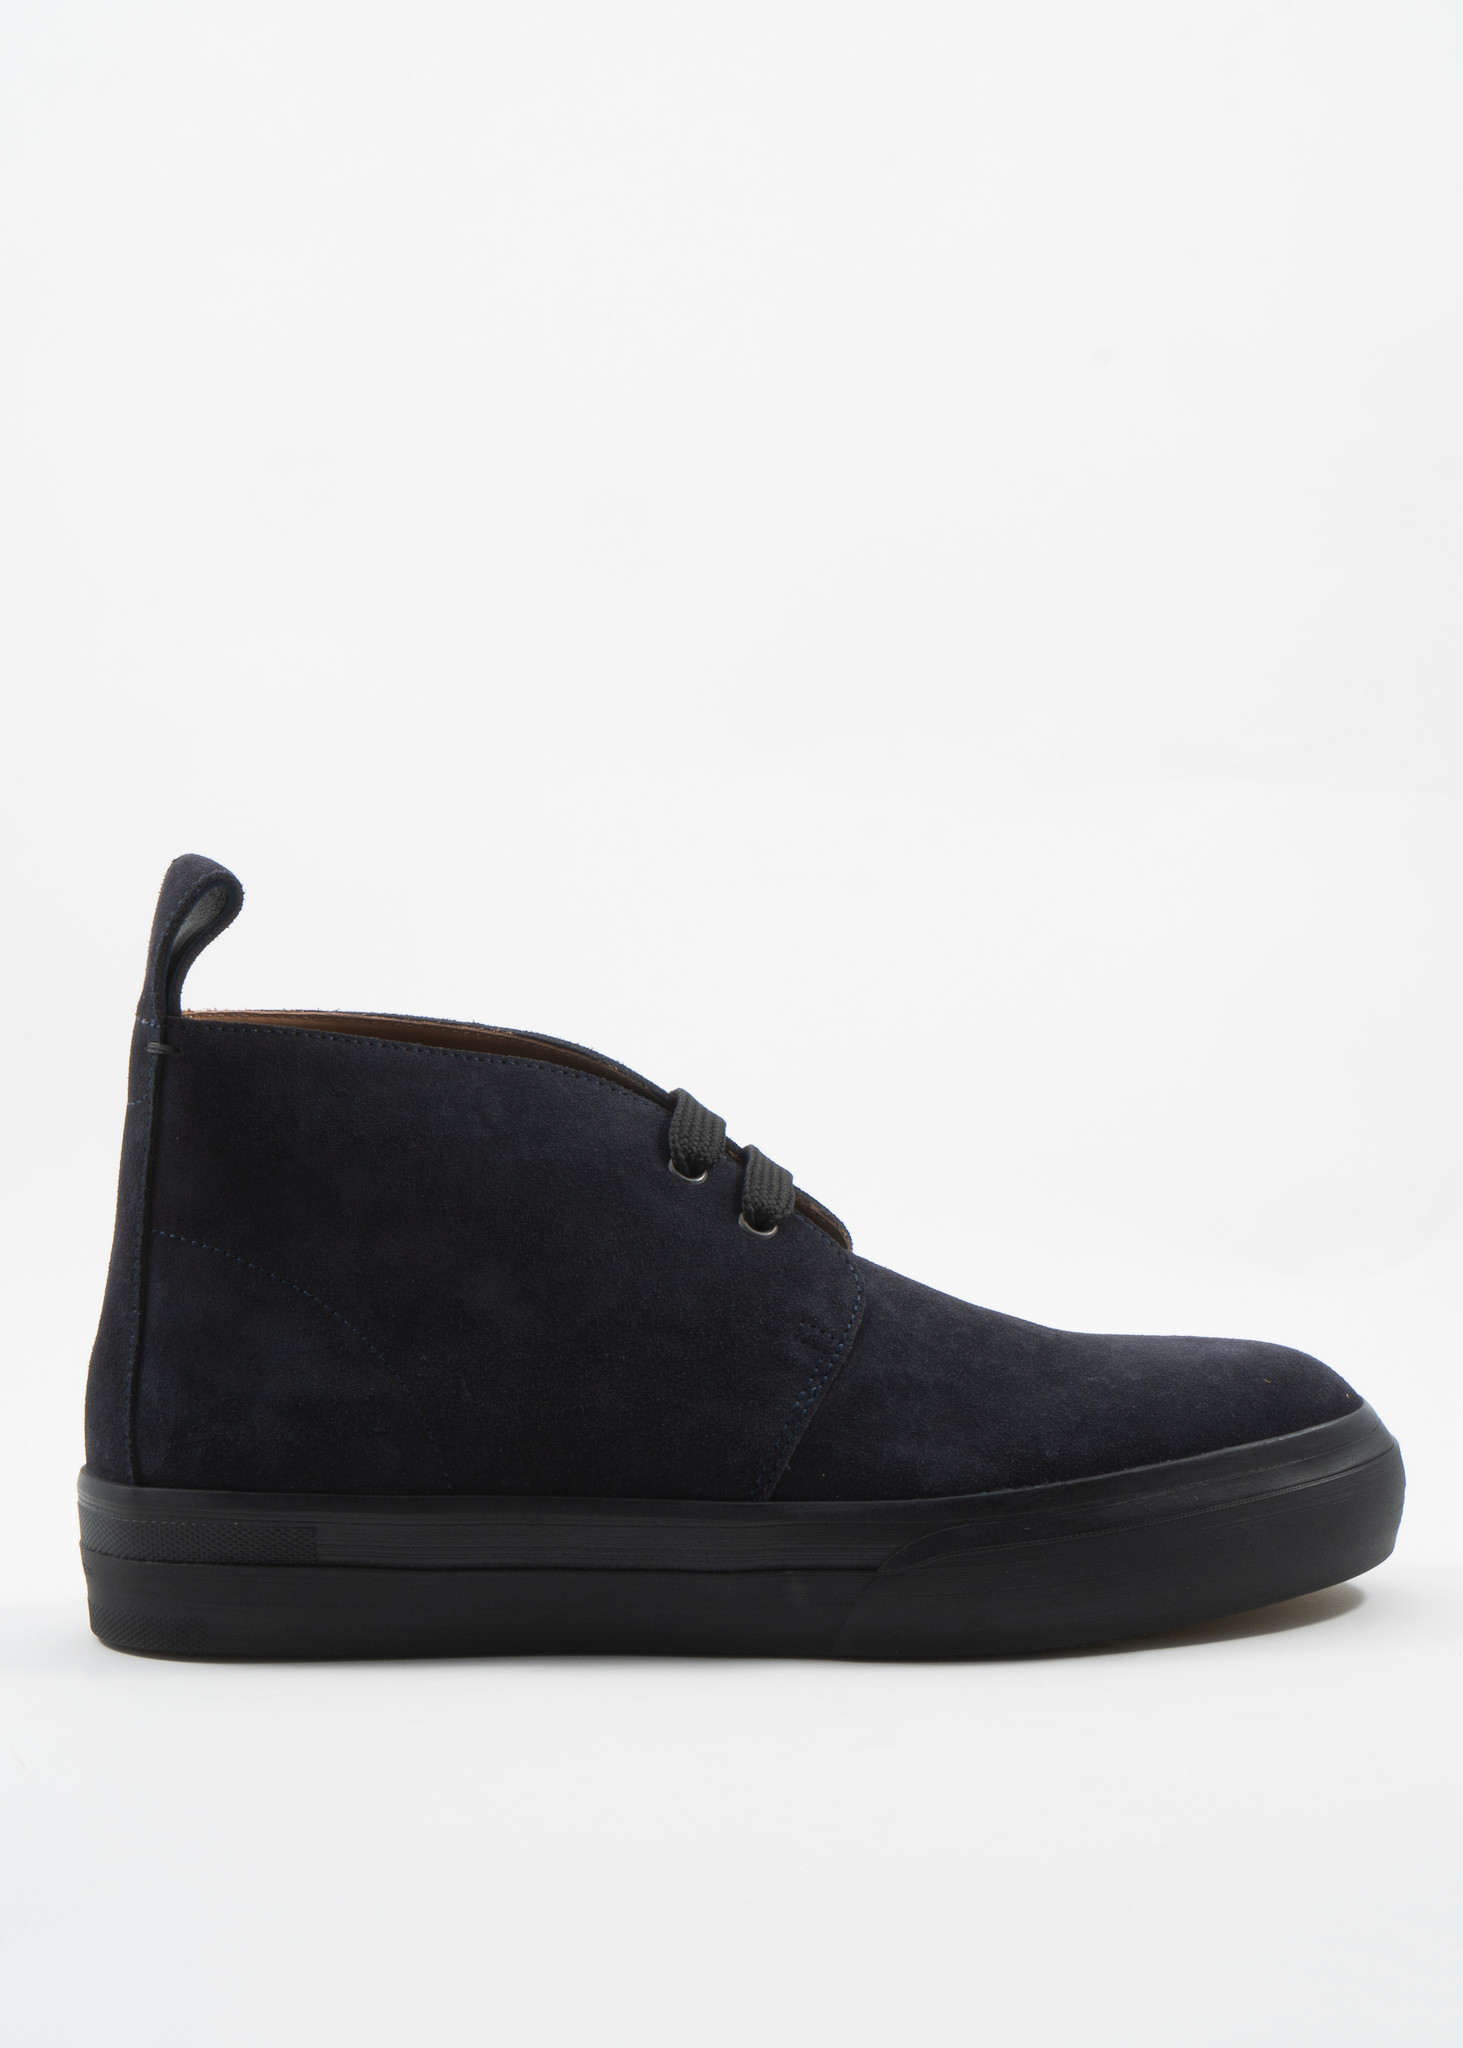 Navy Leather High-Top Sneaker